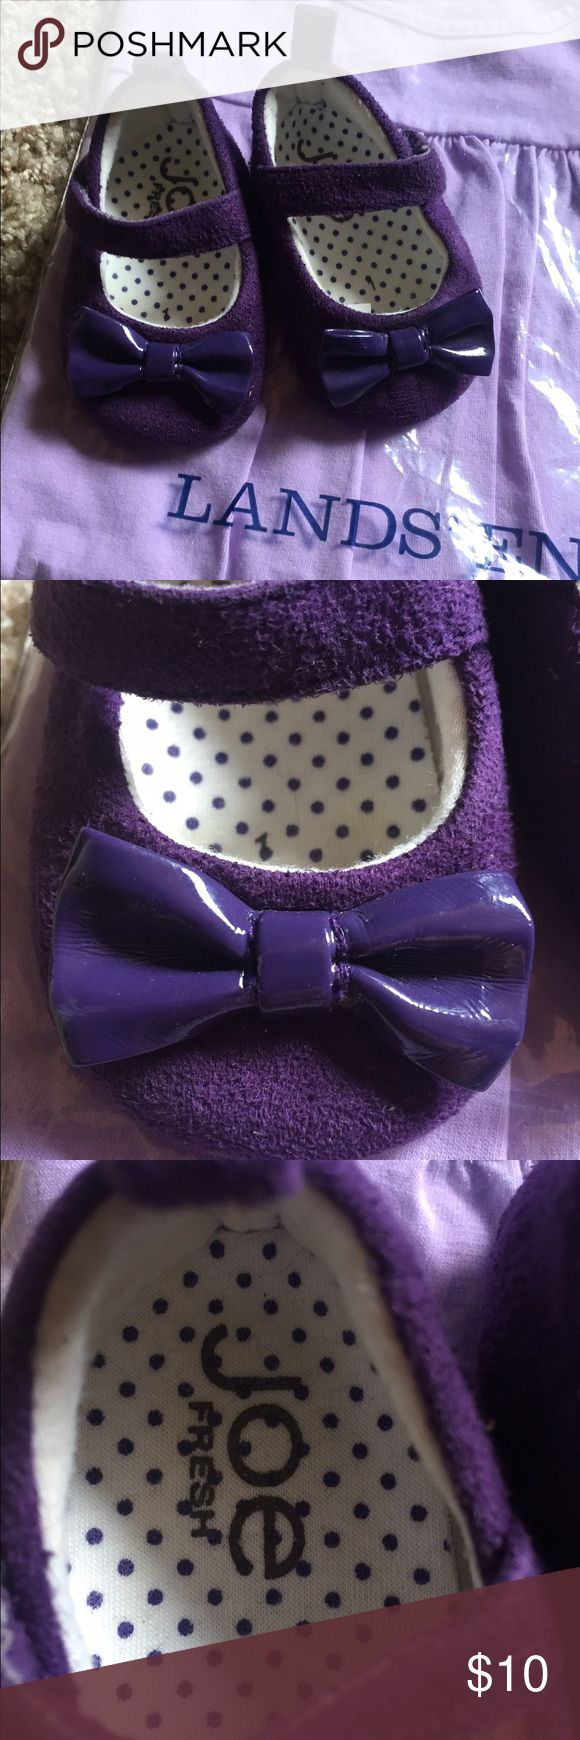 Little purple shoes🎀 So adorable little purple shoes😍put your little girl in these she'll love them forever! Velcro strap for easy on/off and the cutest bow!! EUC!!! They were hardly worn, they grow too fast! Lol Joe Browns Shoes Baby & Walker